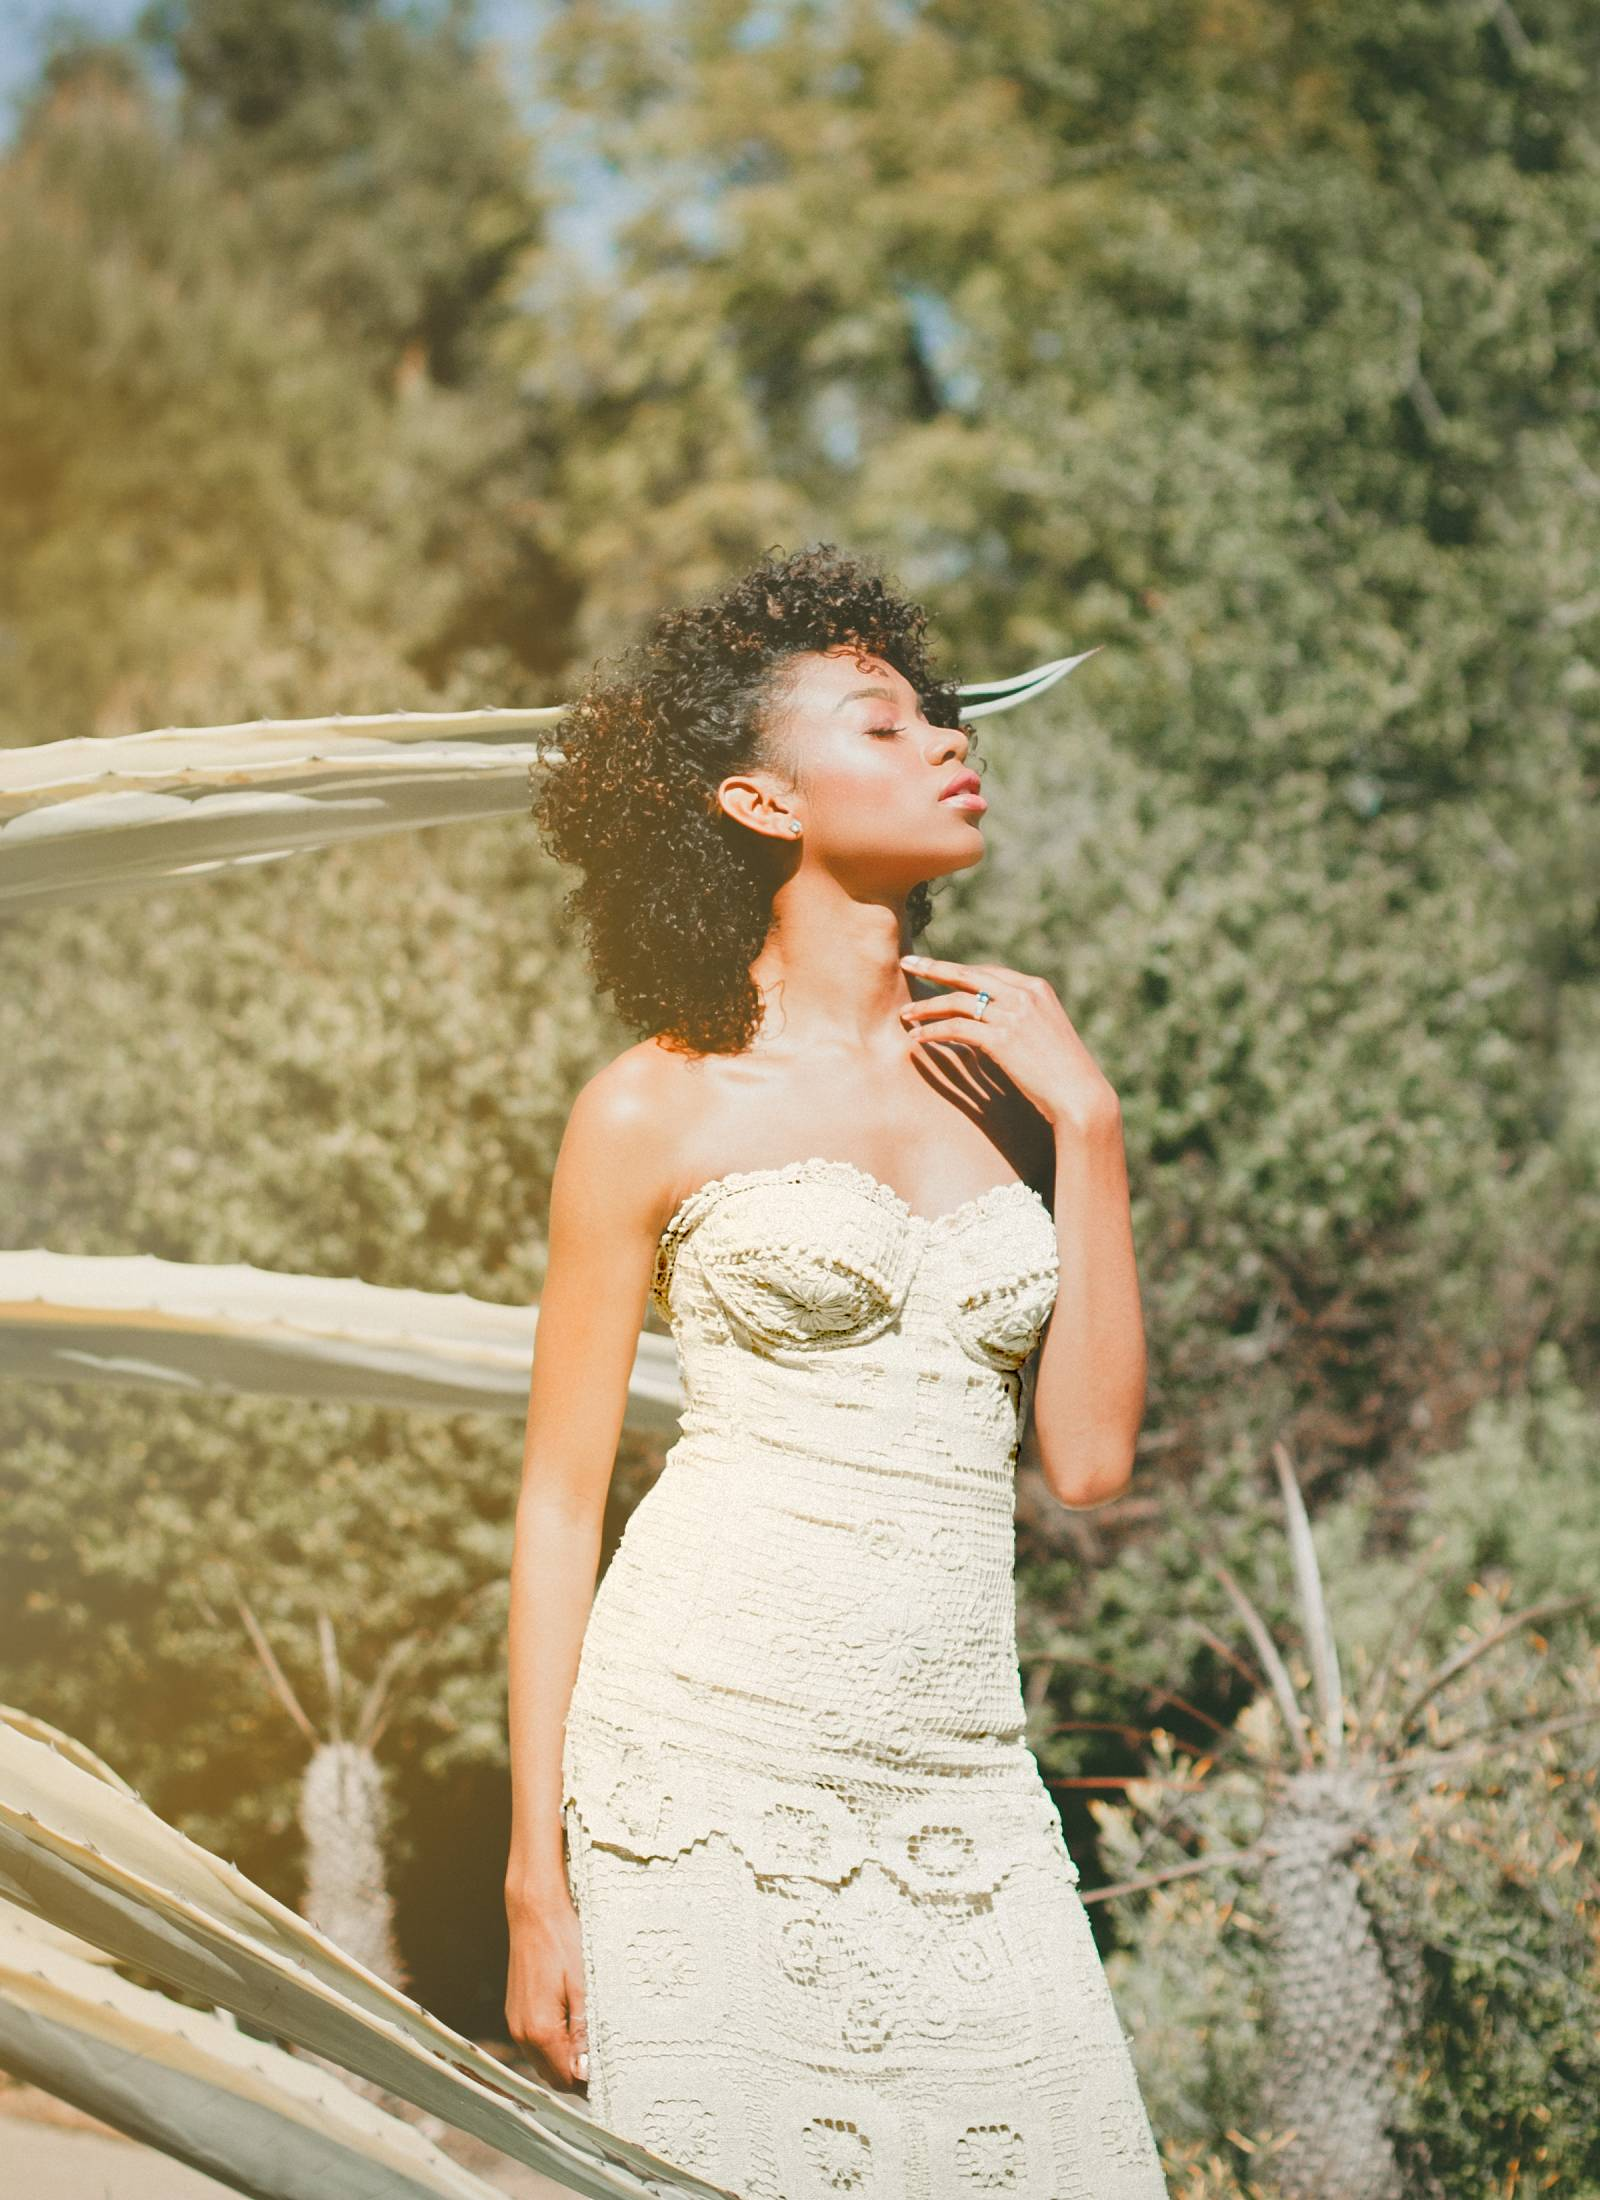 weddings gowns are created from of a blend of vintageupcycled fabrics and organic or sustainable fabrics and embellished with semiprecious crystal - The Bridal Garden